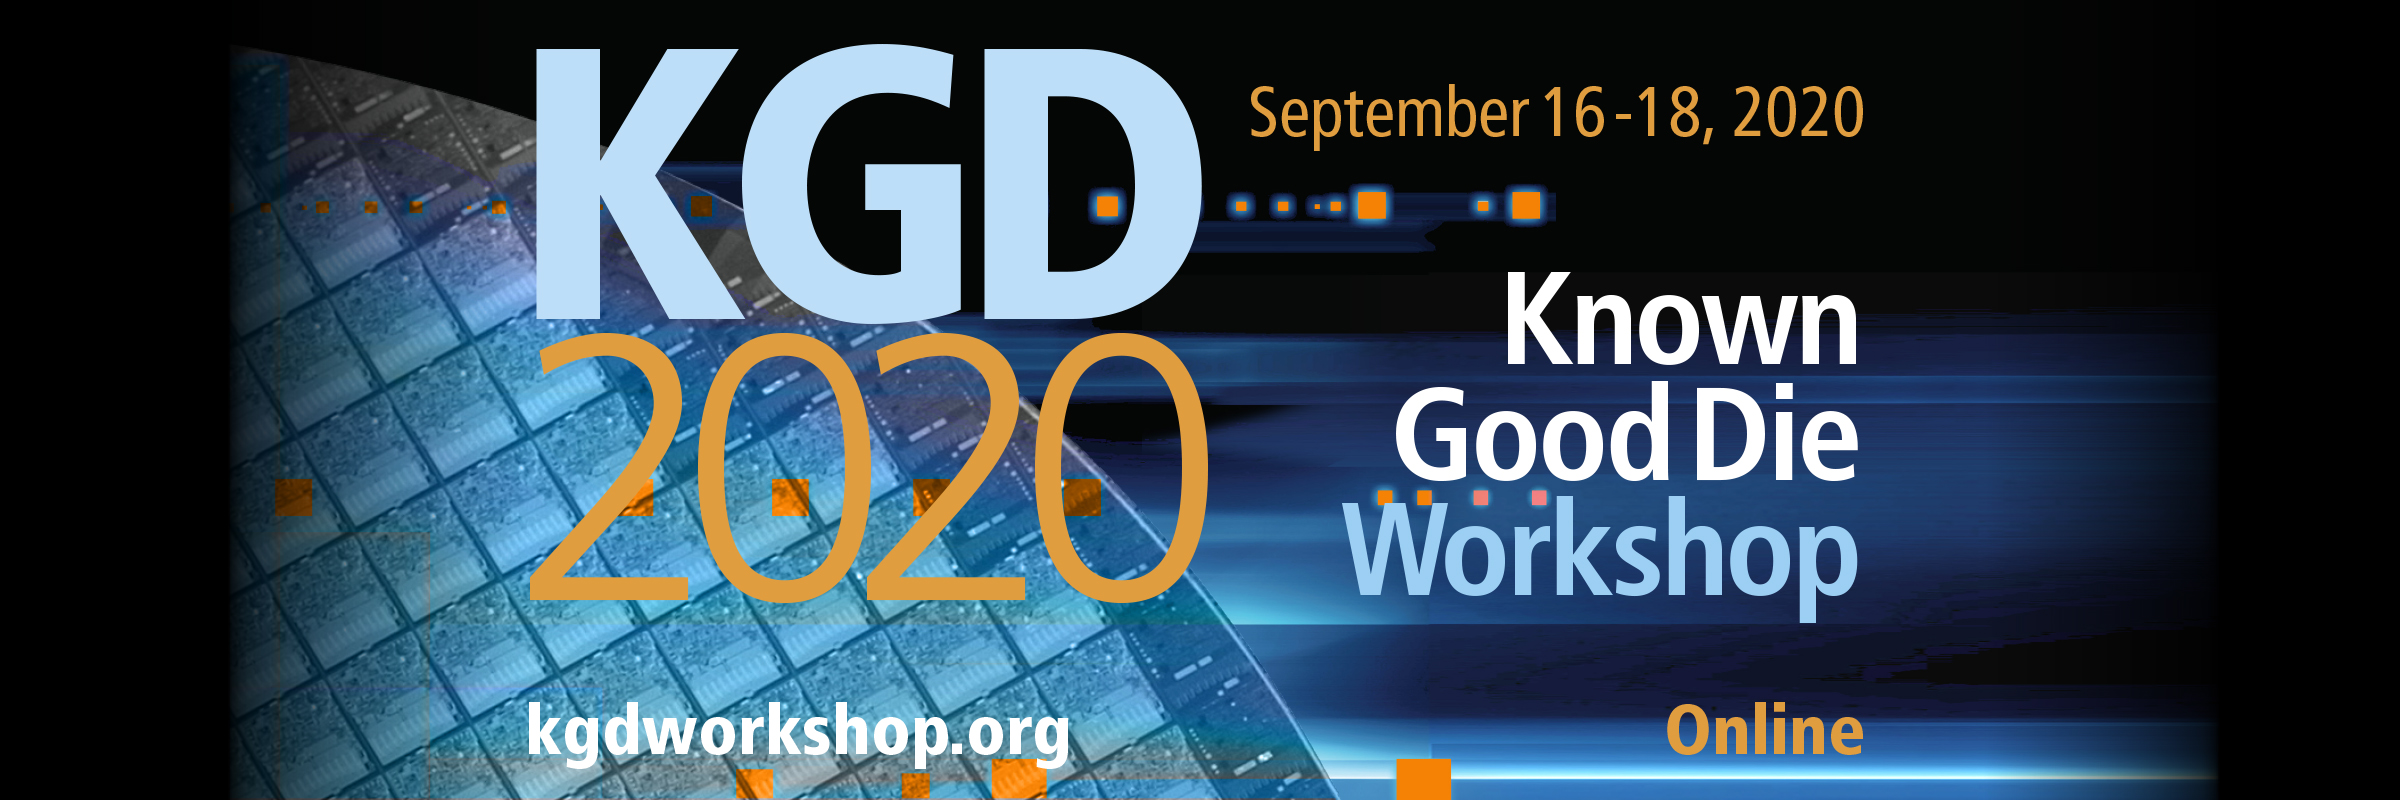 """Featured image for """"Known Good Die Workshop 2020"""""""